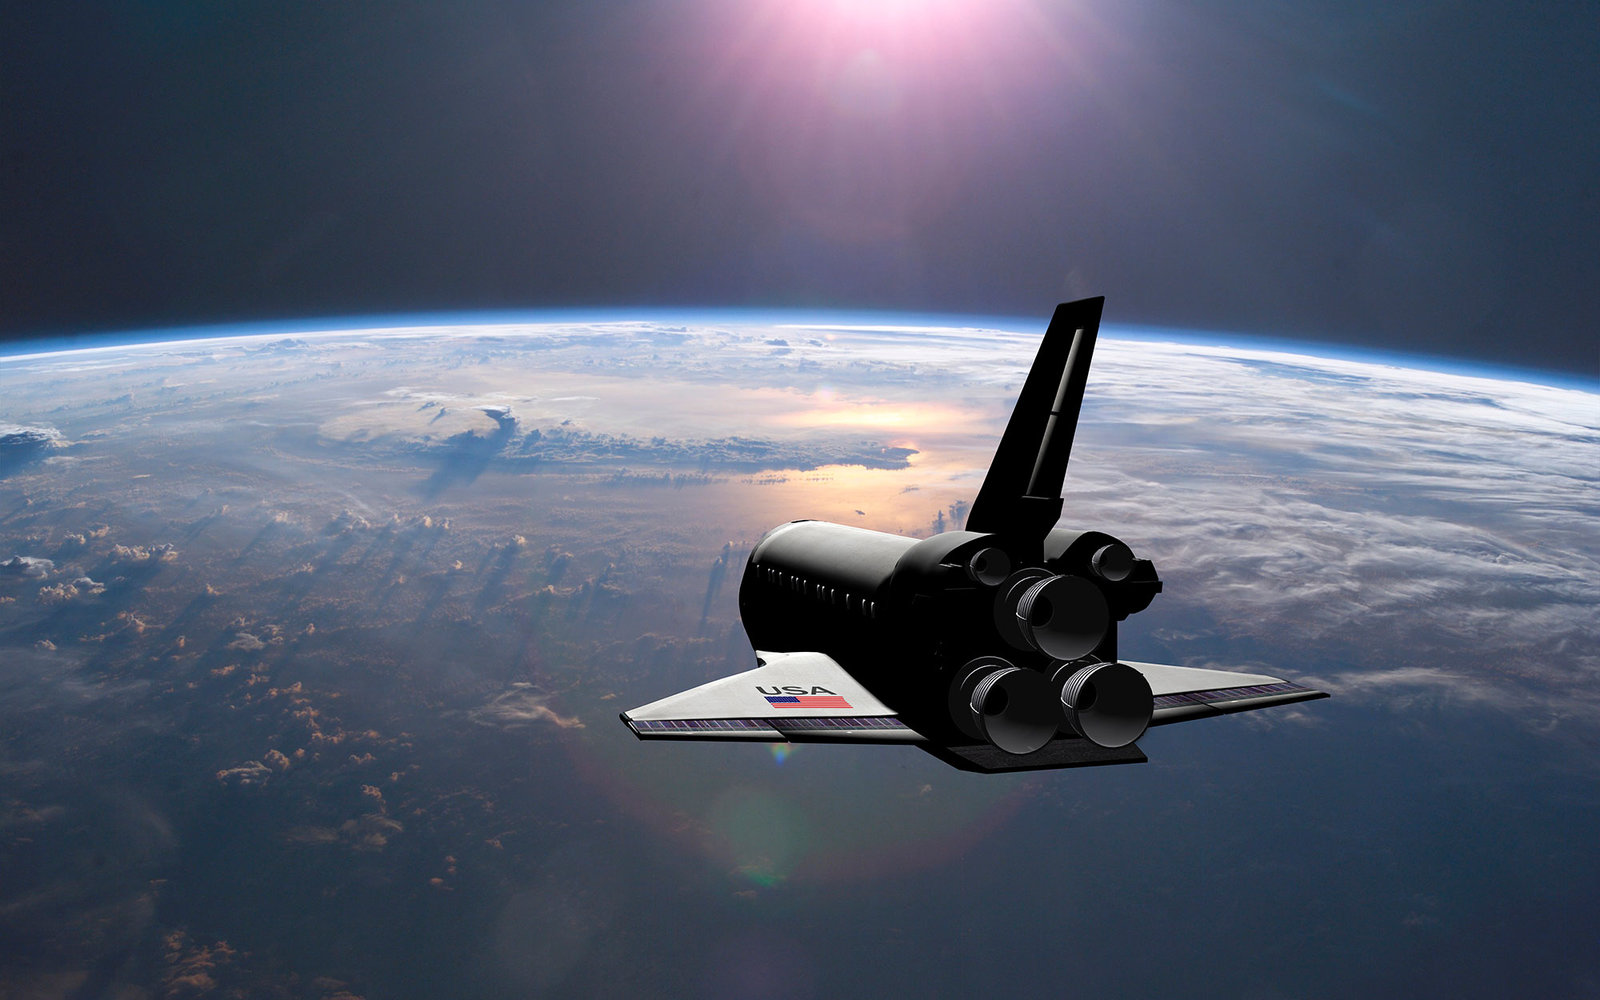 3D render of the space shuttle orbiting the earth, heading towards the rising sun.